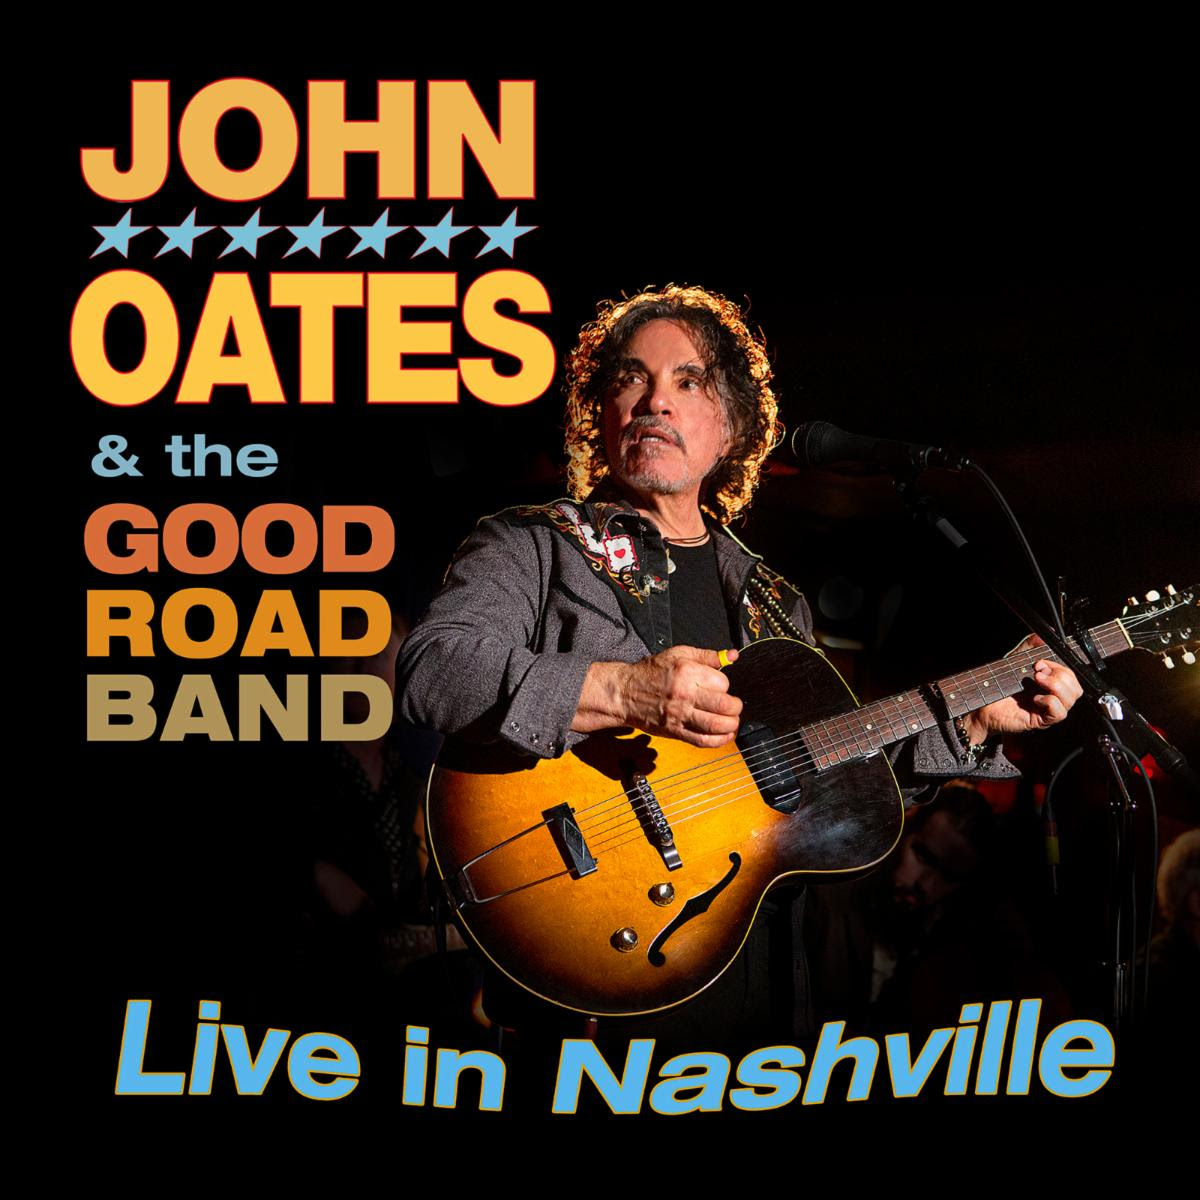 New from John Oates (Image courtesy of Wolfson Entertainment)